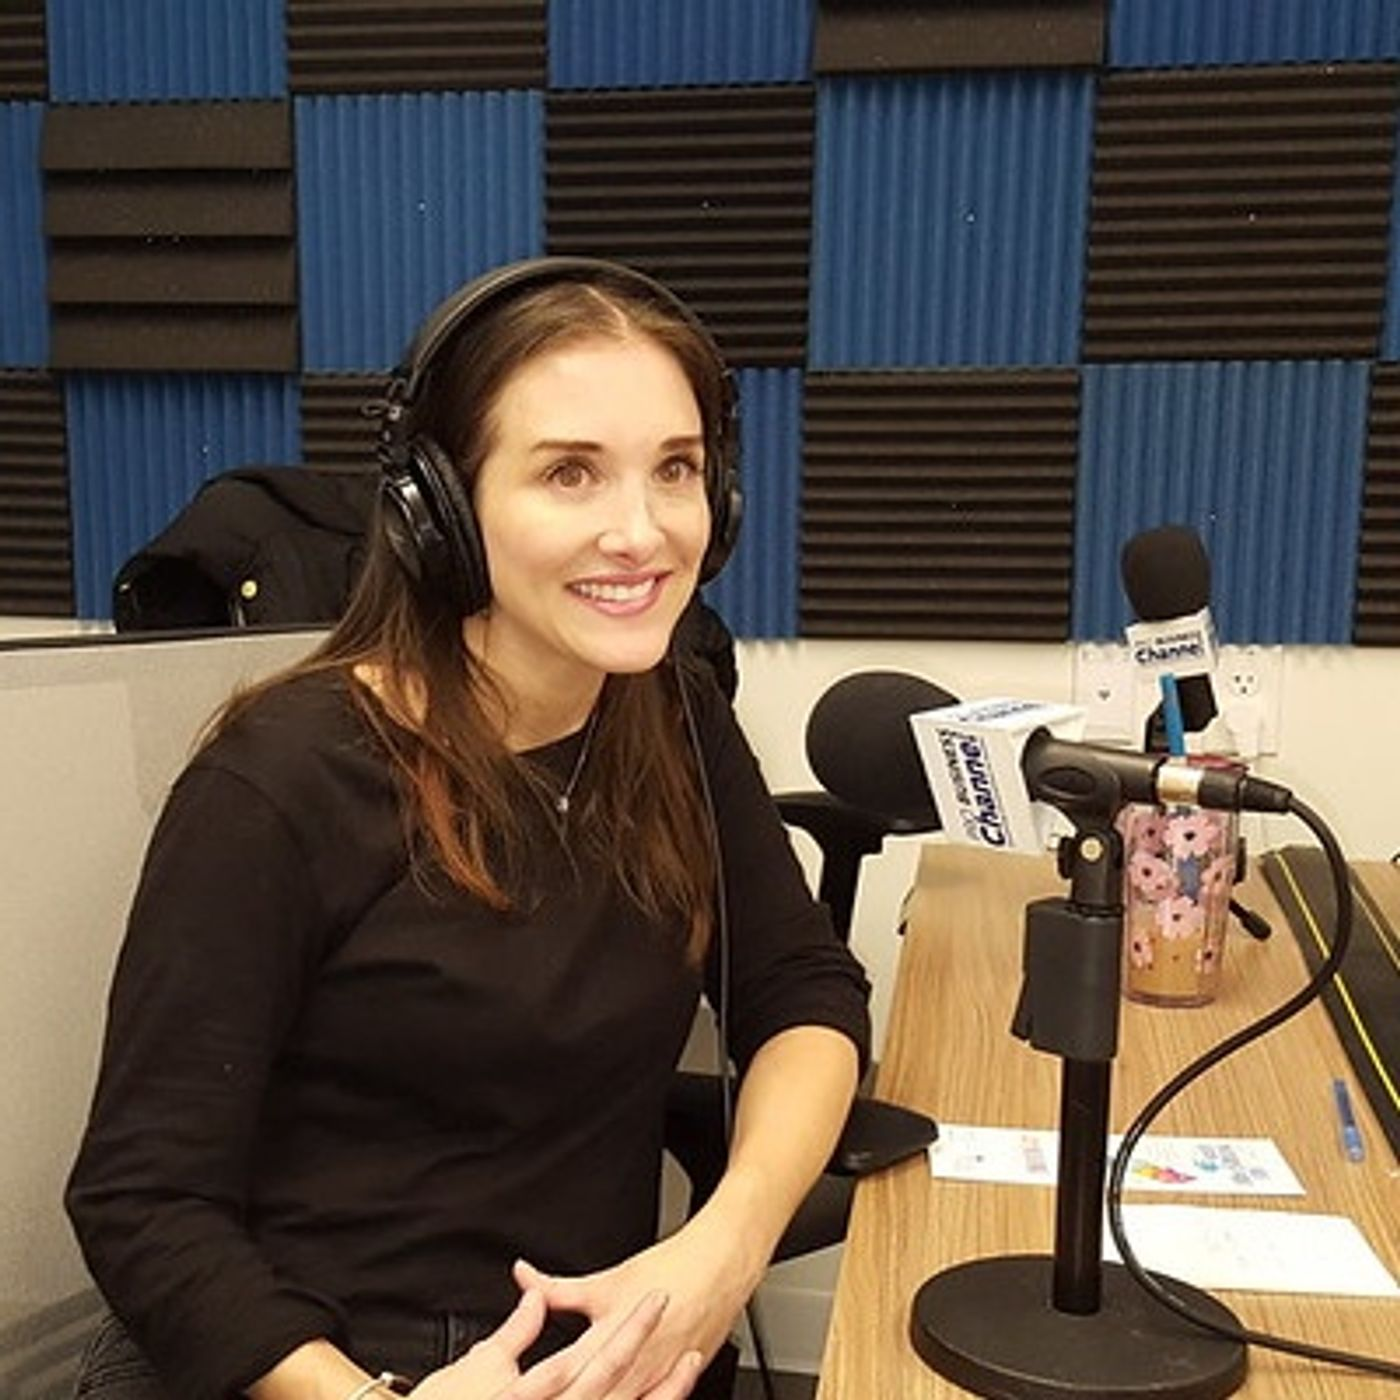 Jenna Shulman with the Jewish Educational Loan Fund on Non Profits Radio